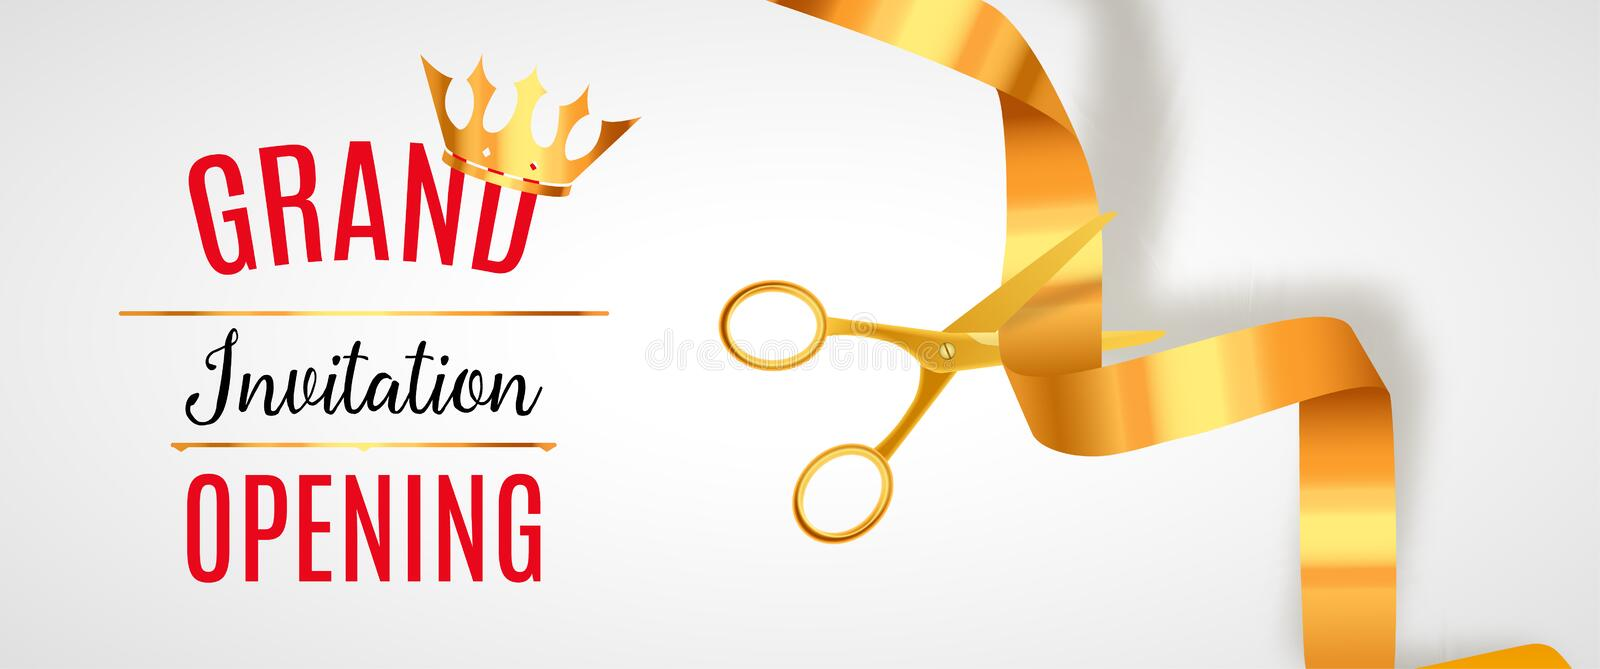 Grand opening invitation banner golden ribbon cut ceremony event download grand opening invitation banner golden ribbon cut ceremony event grand opening celebration card stopboris Gallery